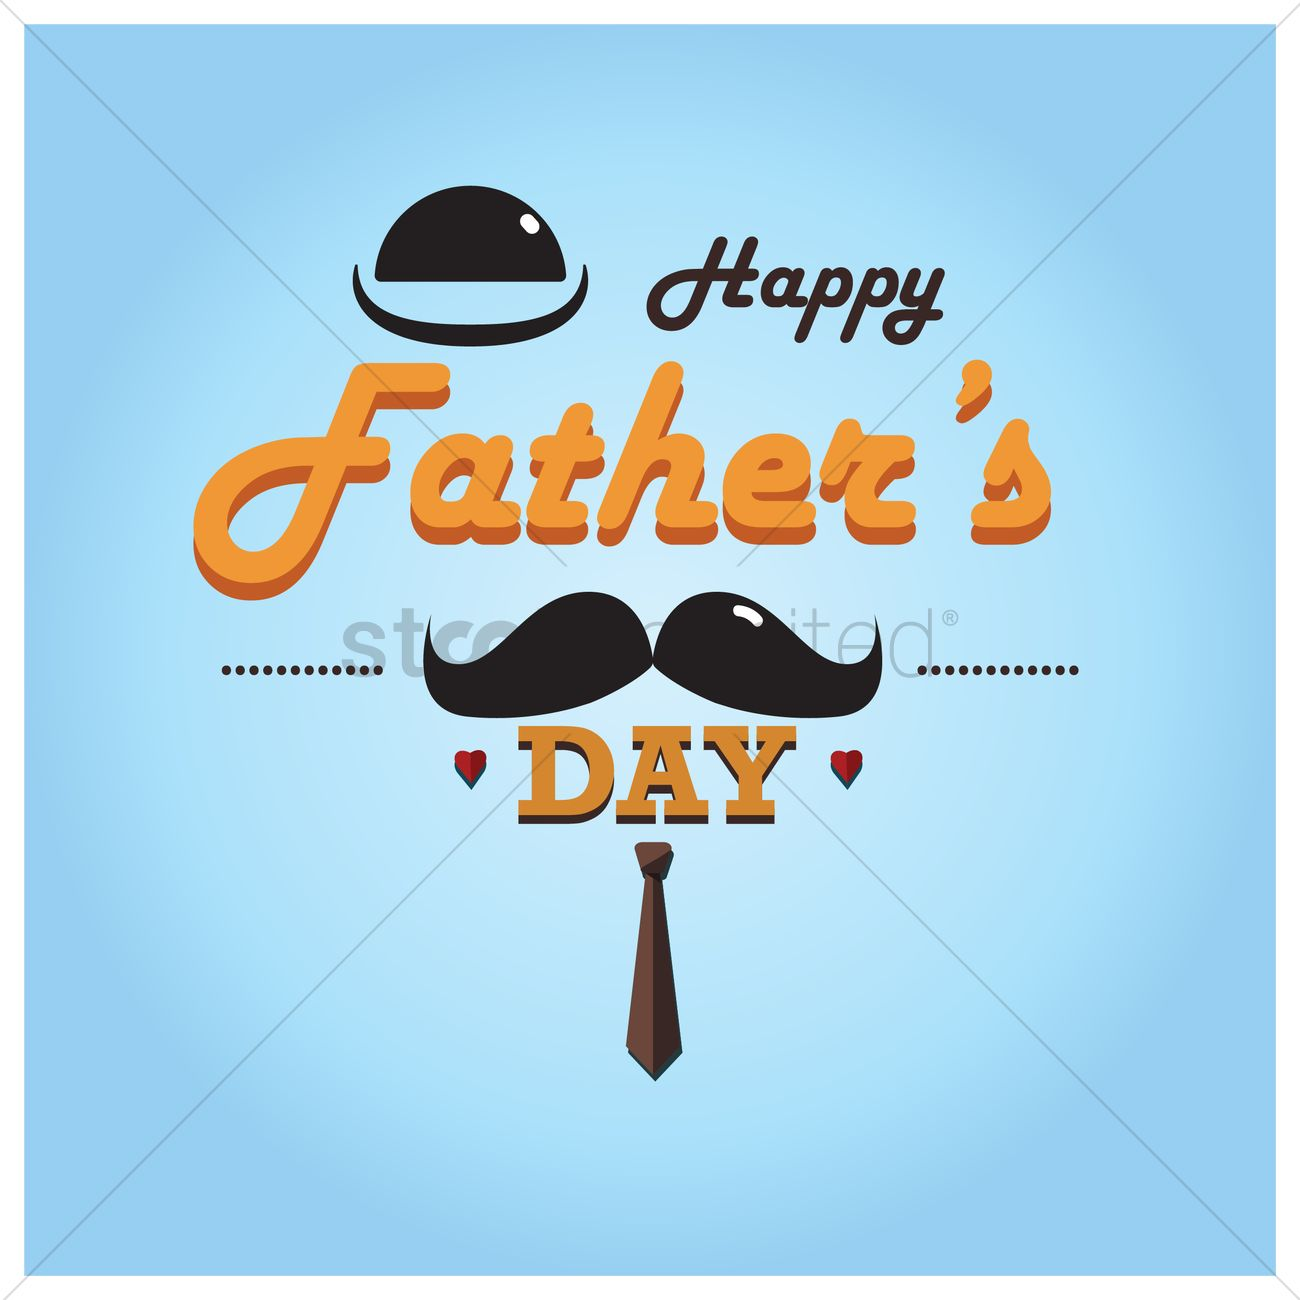 Happy Fathers Day Wallpaper Vector Image 1585481